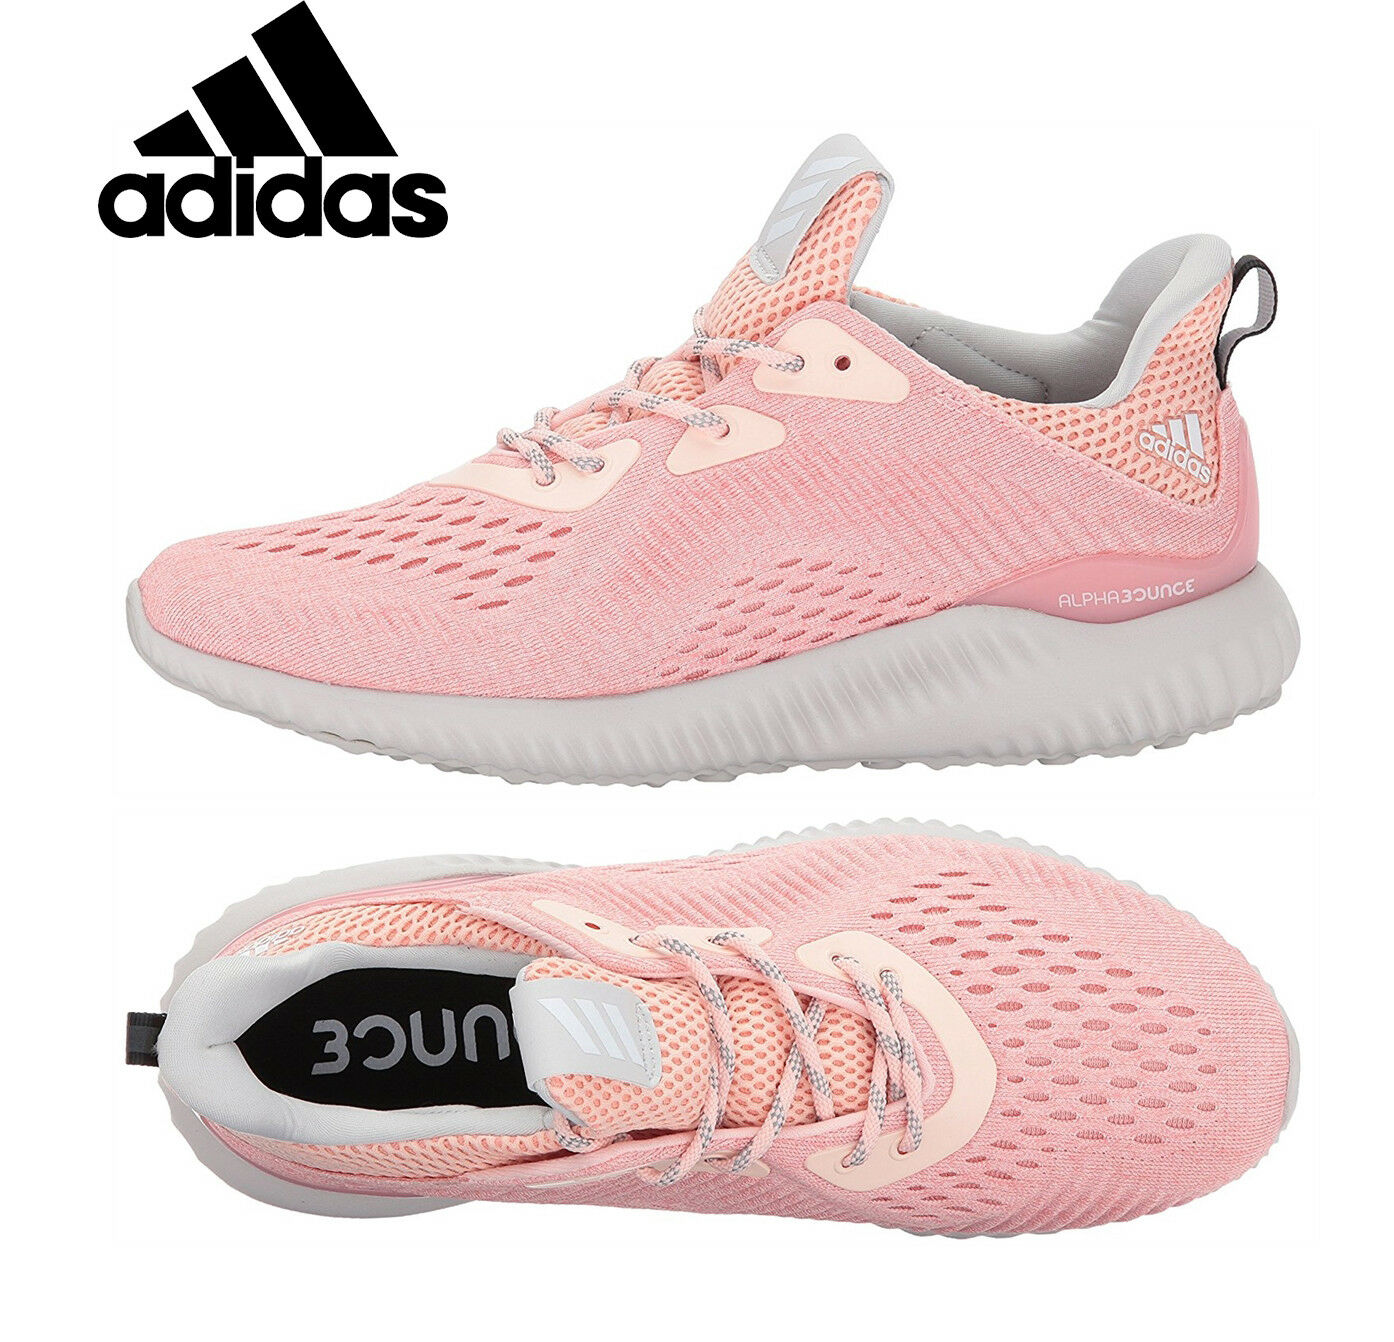 Womens ADIDAS ALPHABOUNCE EM Sneakers Womens Running Shoes Pink Sneakers EM BW1195 NEW efc796